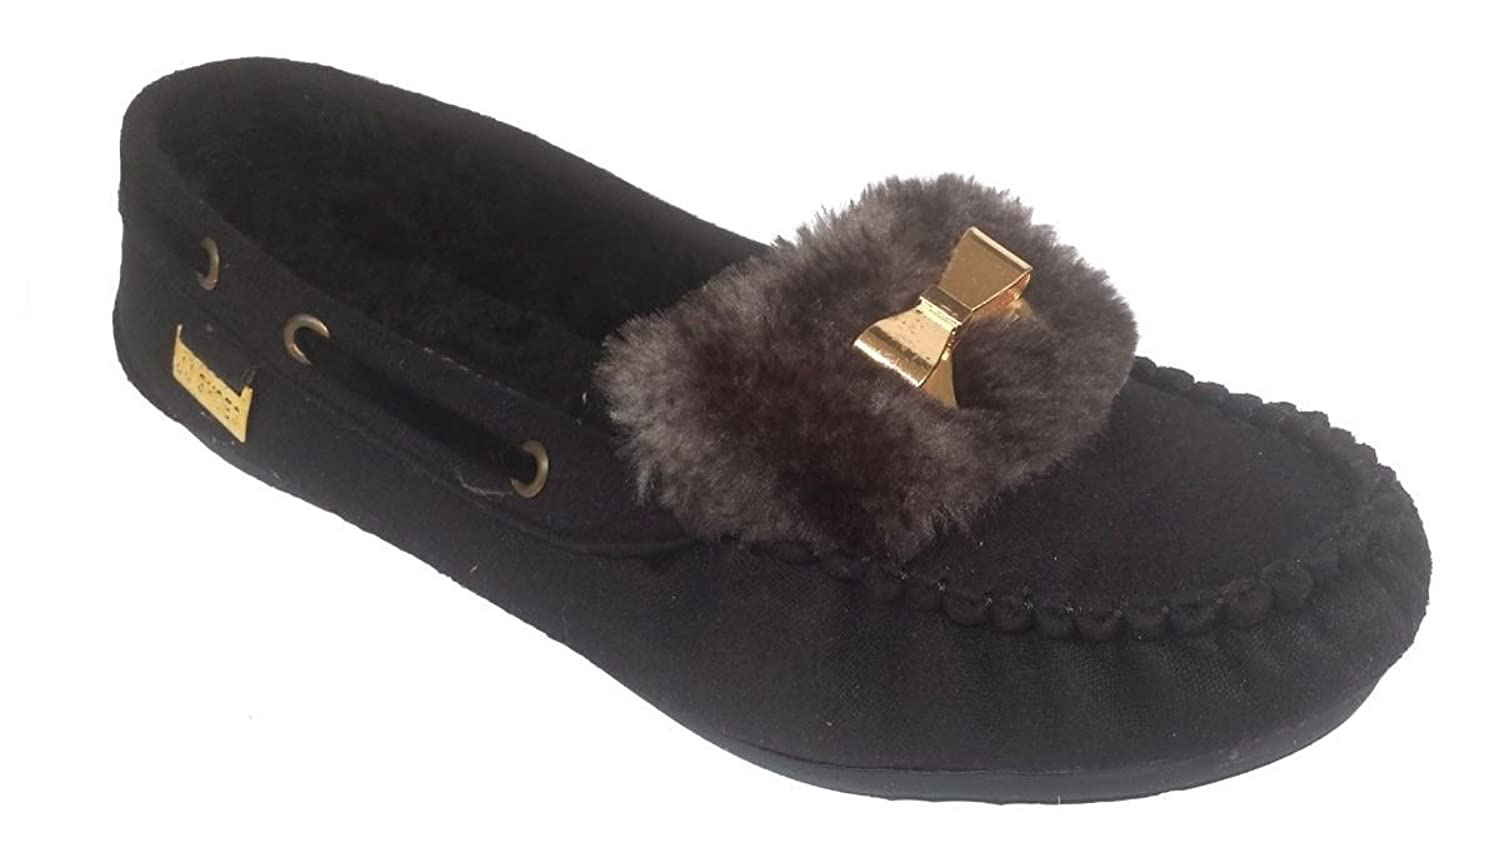 Elegant Women's Casual Faux Suede Black Moccasin Loafers With Bow